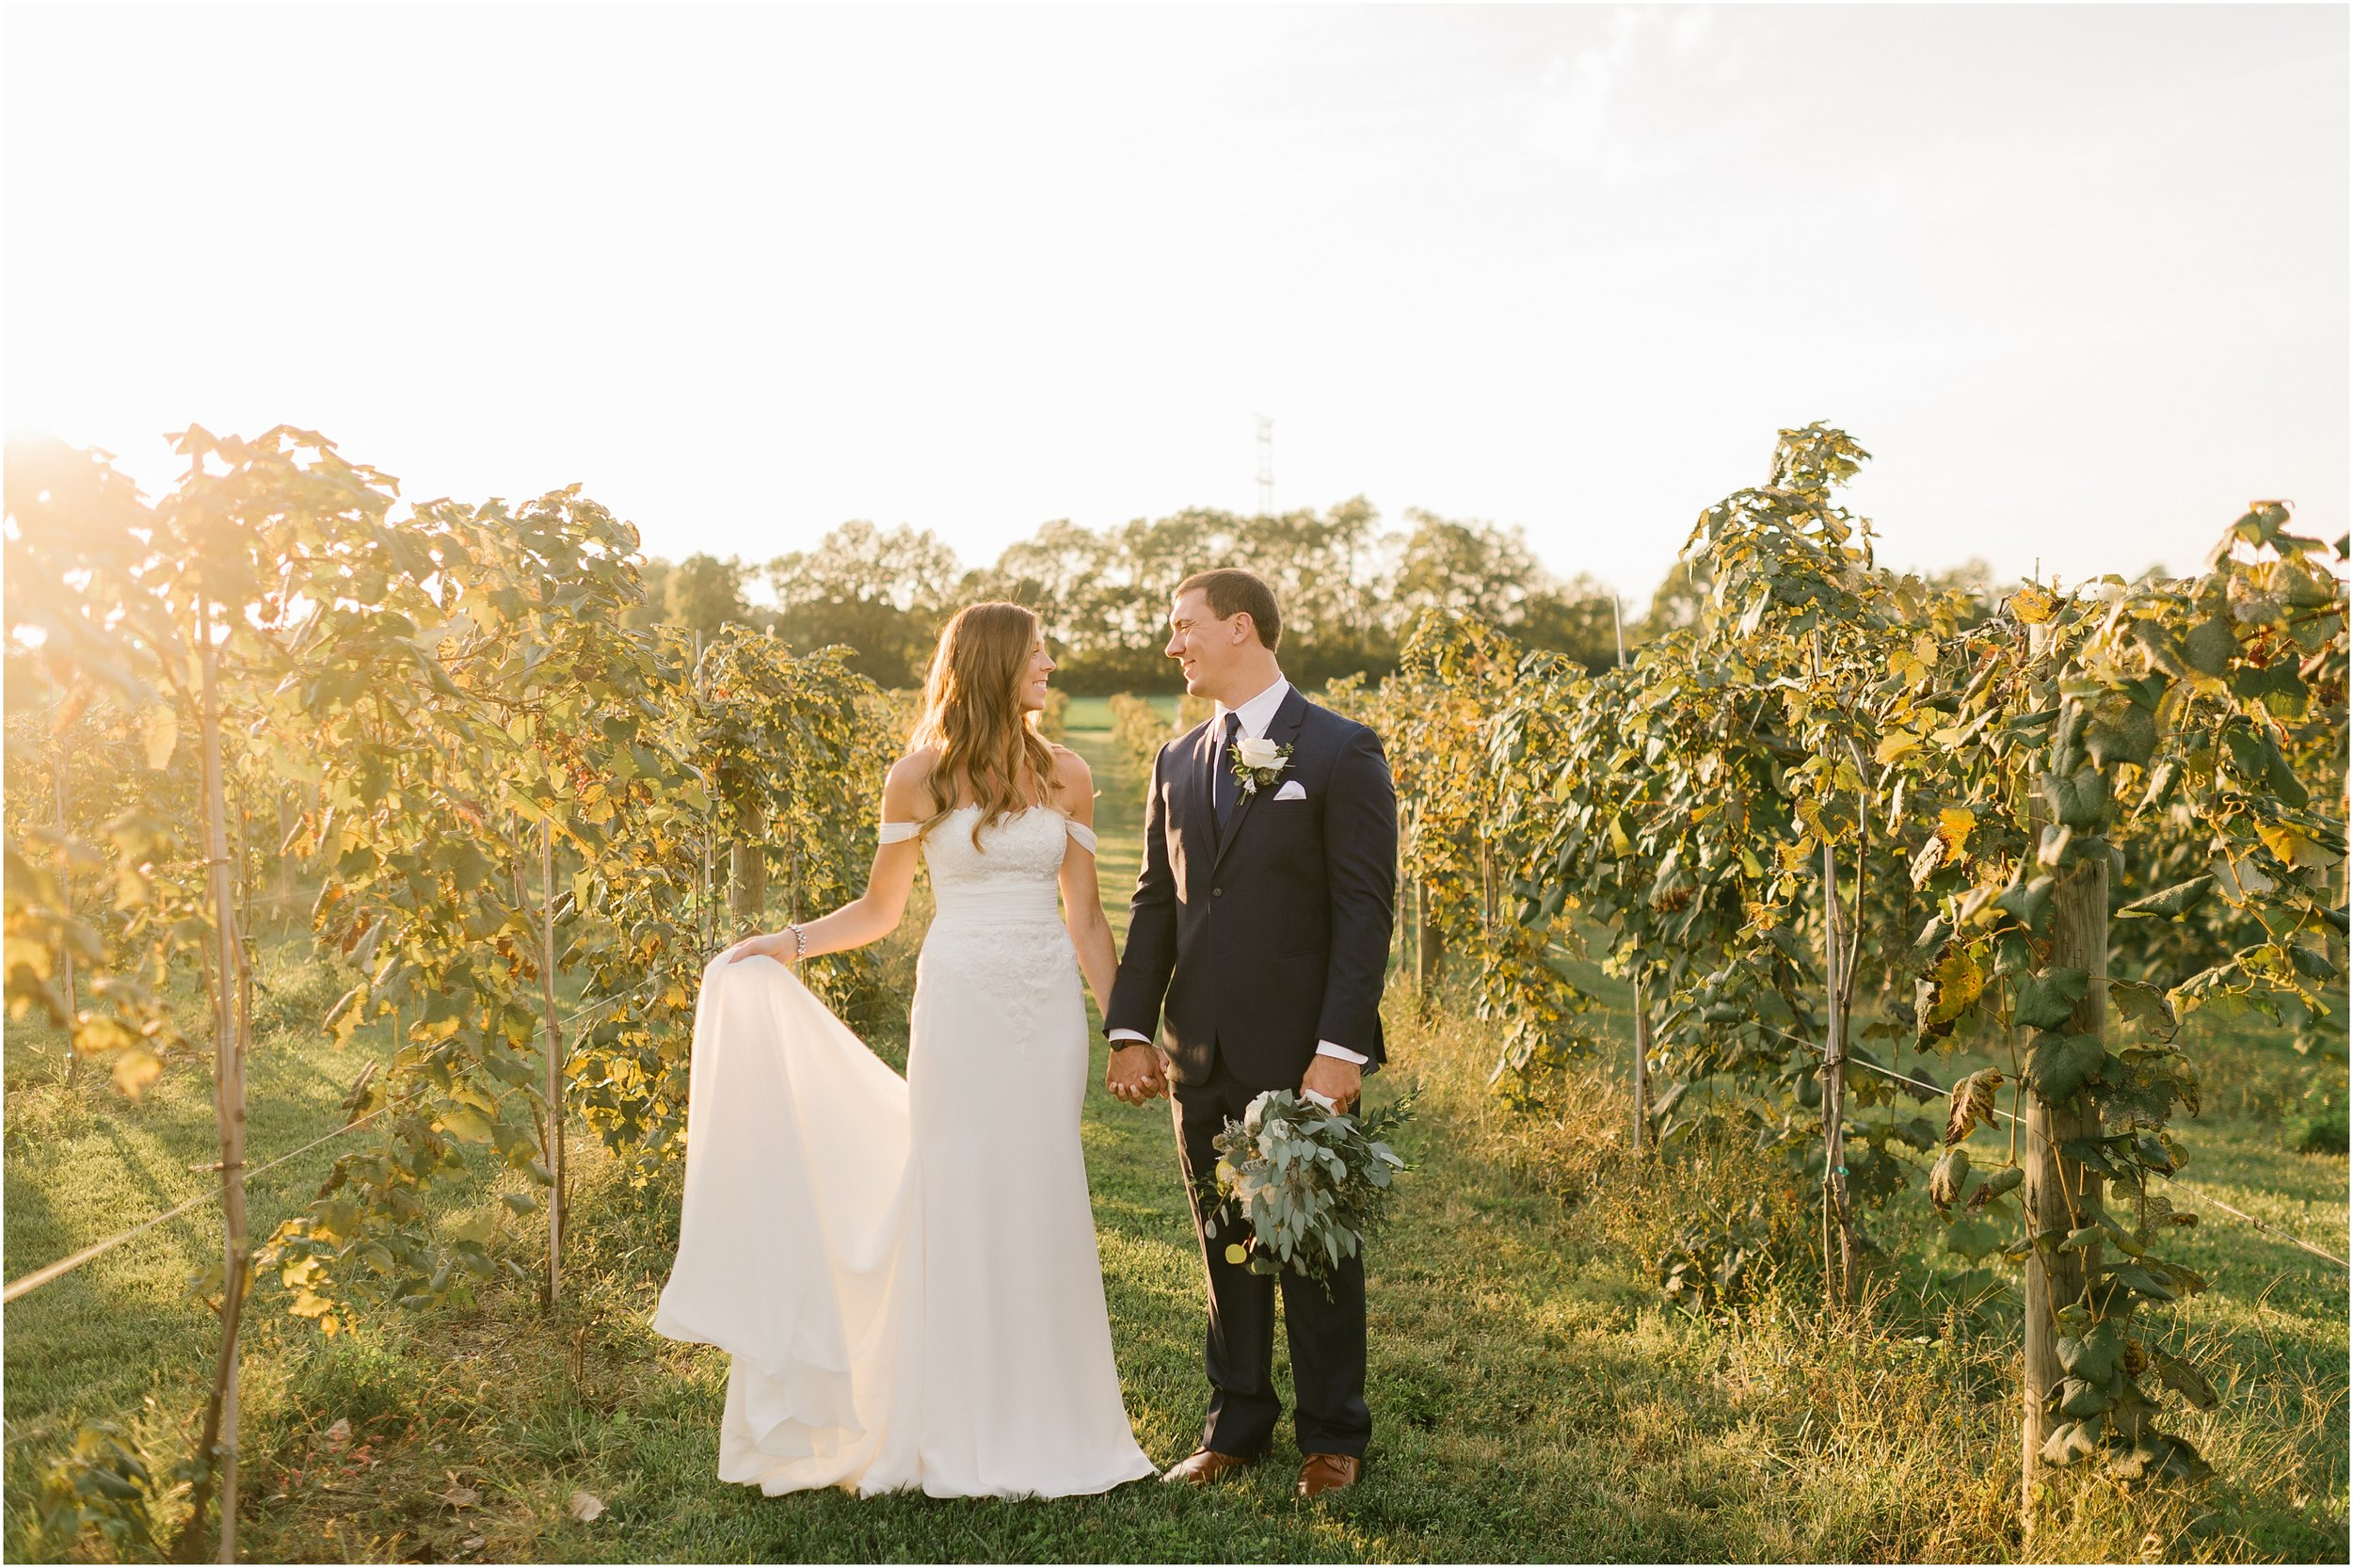 Rebecca_Shehorn_Photography_Indianapolis Wedding Photographer Sycamore at Mallow Run Wedding_9609.jpg